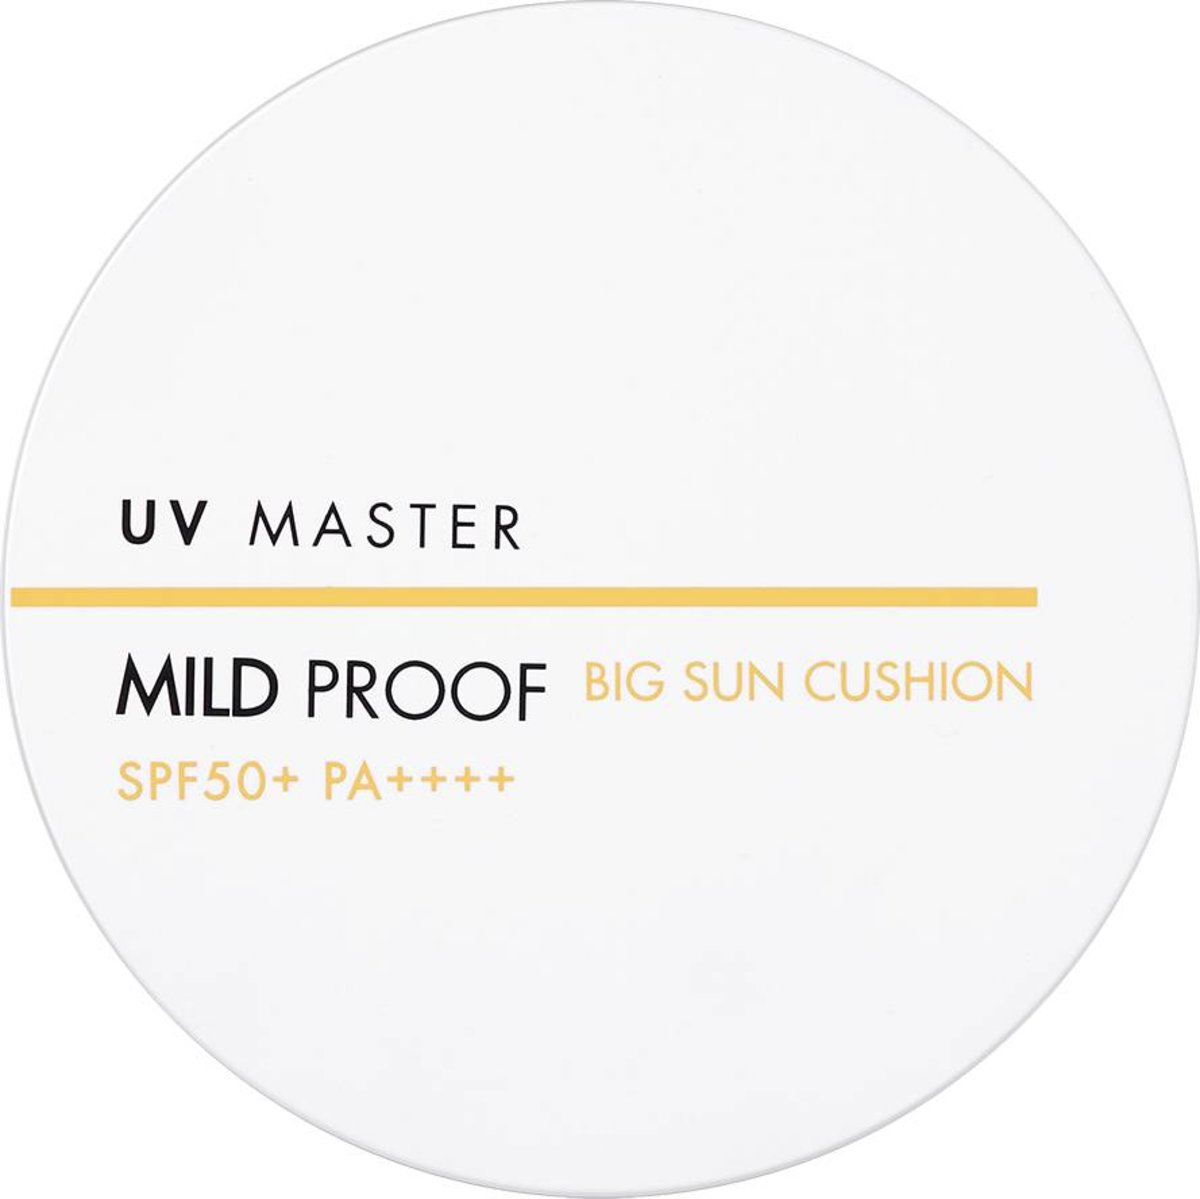 UV MASTER MILD PROOF BIG SUN CUSHION